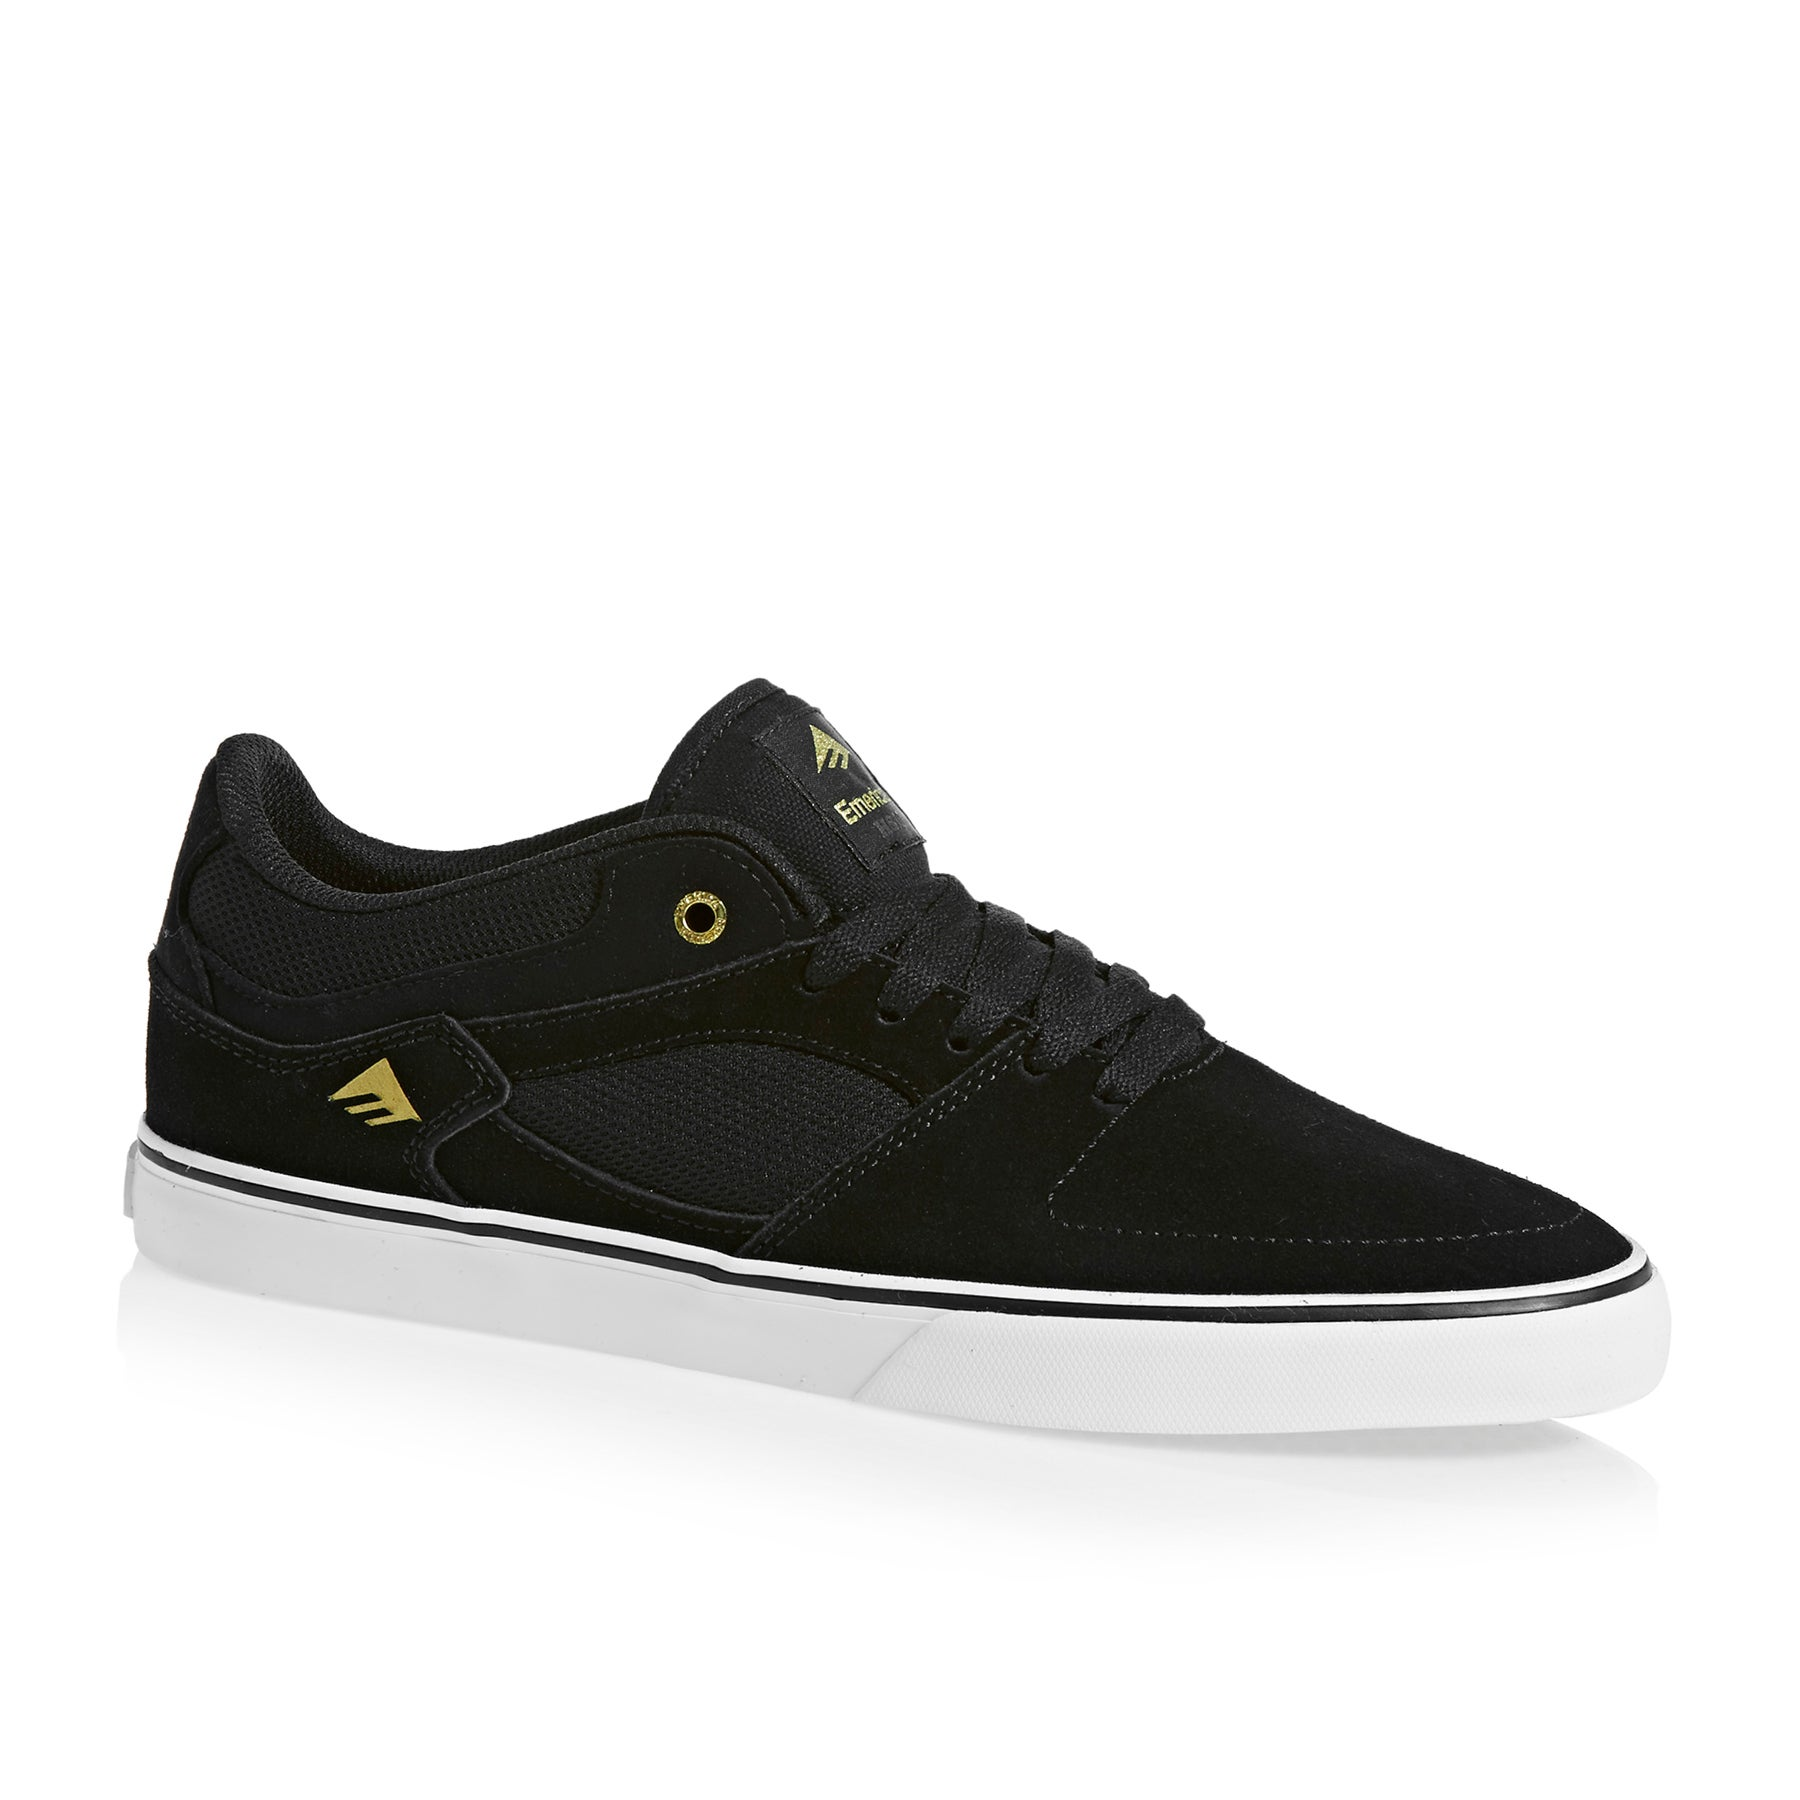 Emerica HSU Low Vulc Boty - Black White